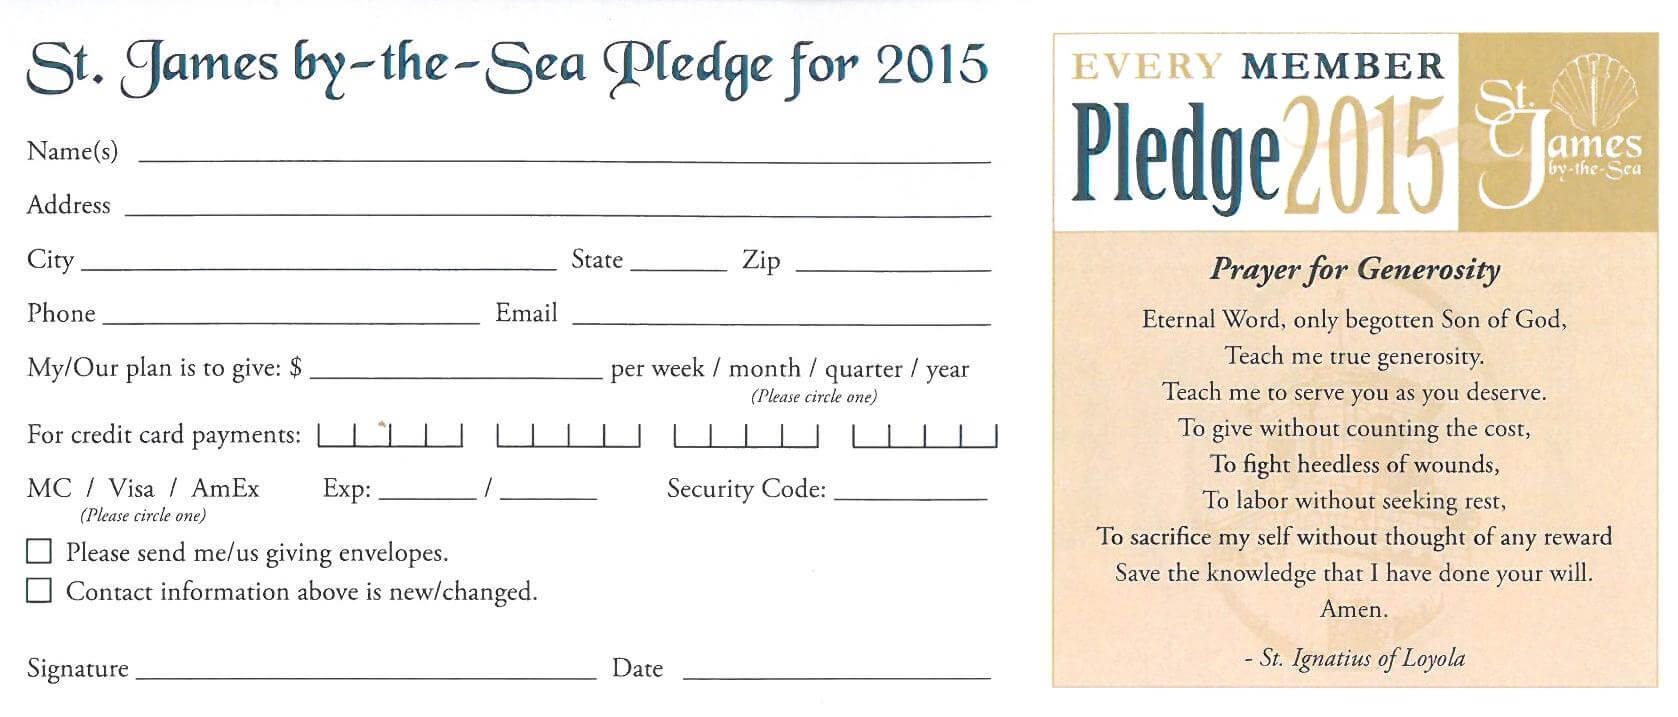 4570Book | Church Pledge Cards Clipart In Pack #4661 For Free Pledge Card Template